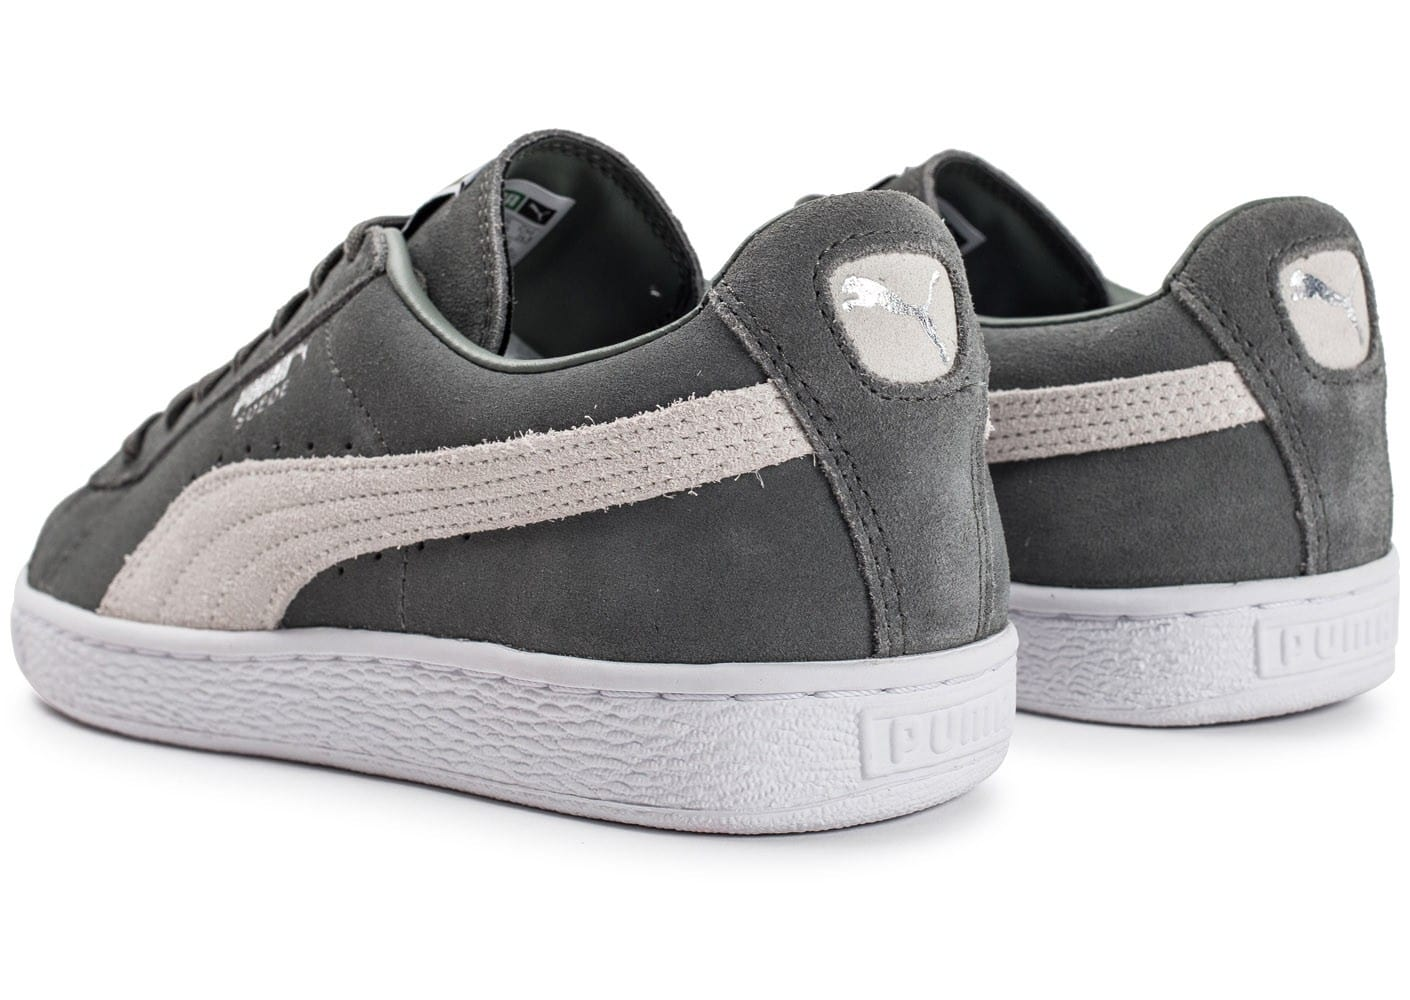 puma suede classic grise chaussures homme chausport. Black Bedroom Furniture Sets. Home Design Ideas